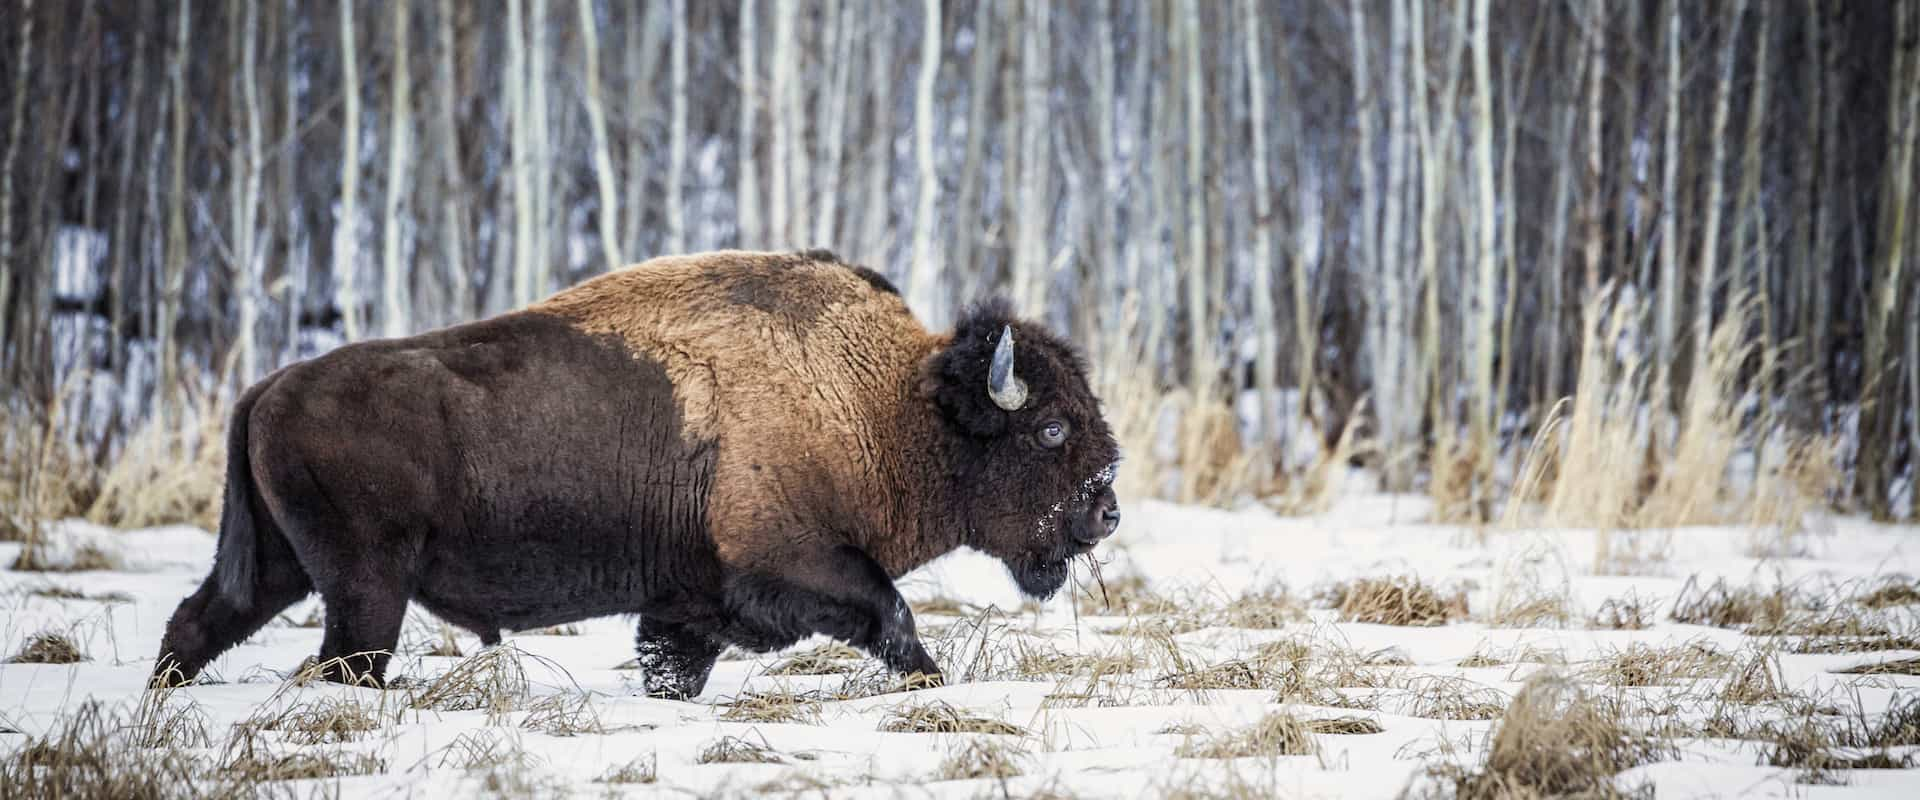 Bison have returned to Banff National Park in the Canadian Rockies